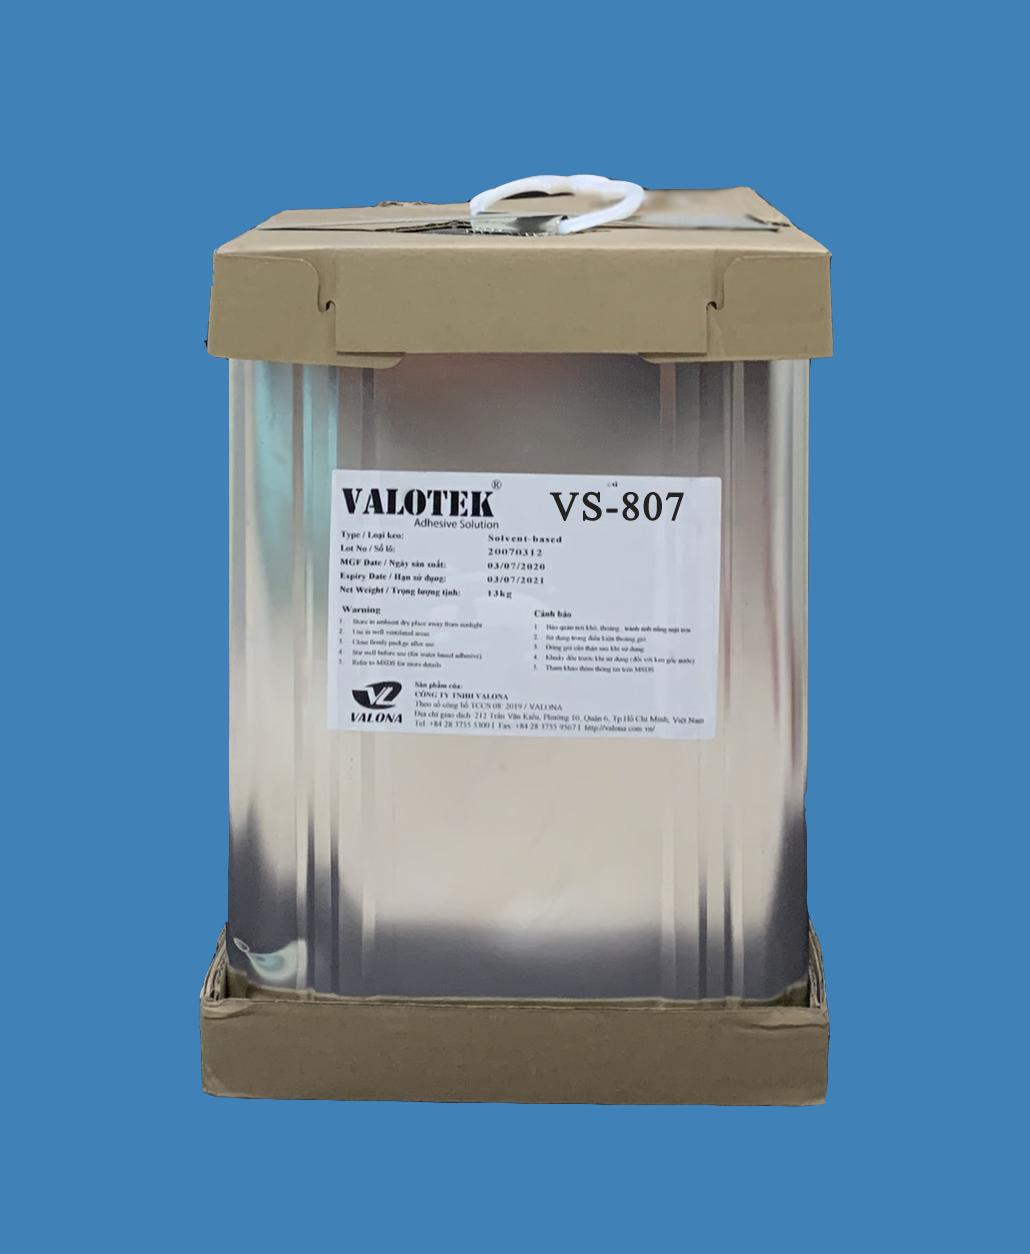 SOLVENT-BASED ADHESIVE FOR WOOD INDUSTRY VALOTEK VS-807